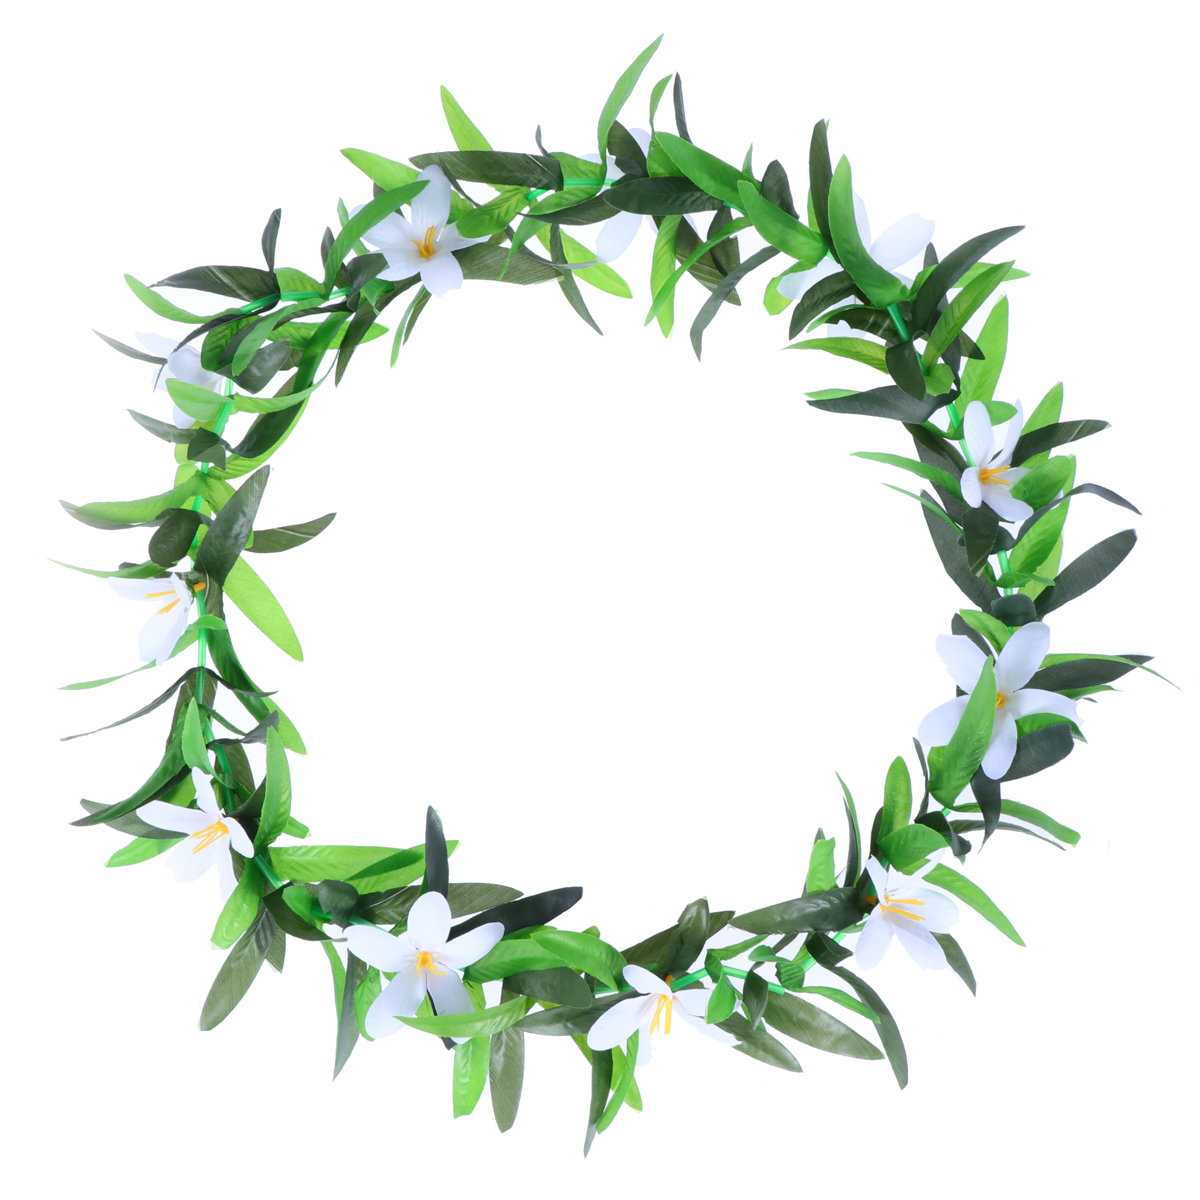 Hawaiian luau party leis necklace simulated summer flower wreaths hawaiian luau party leis necklace simulated summer flower wreaths garland for tropical beach theme party favors in party diy decorations from home garden izmirmasajfo Image collections